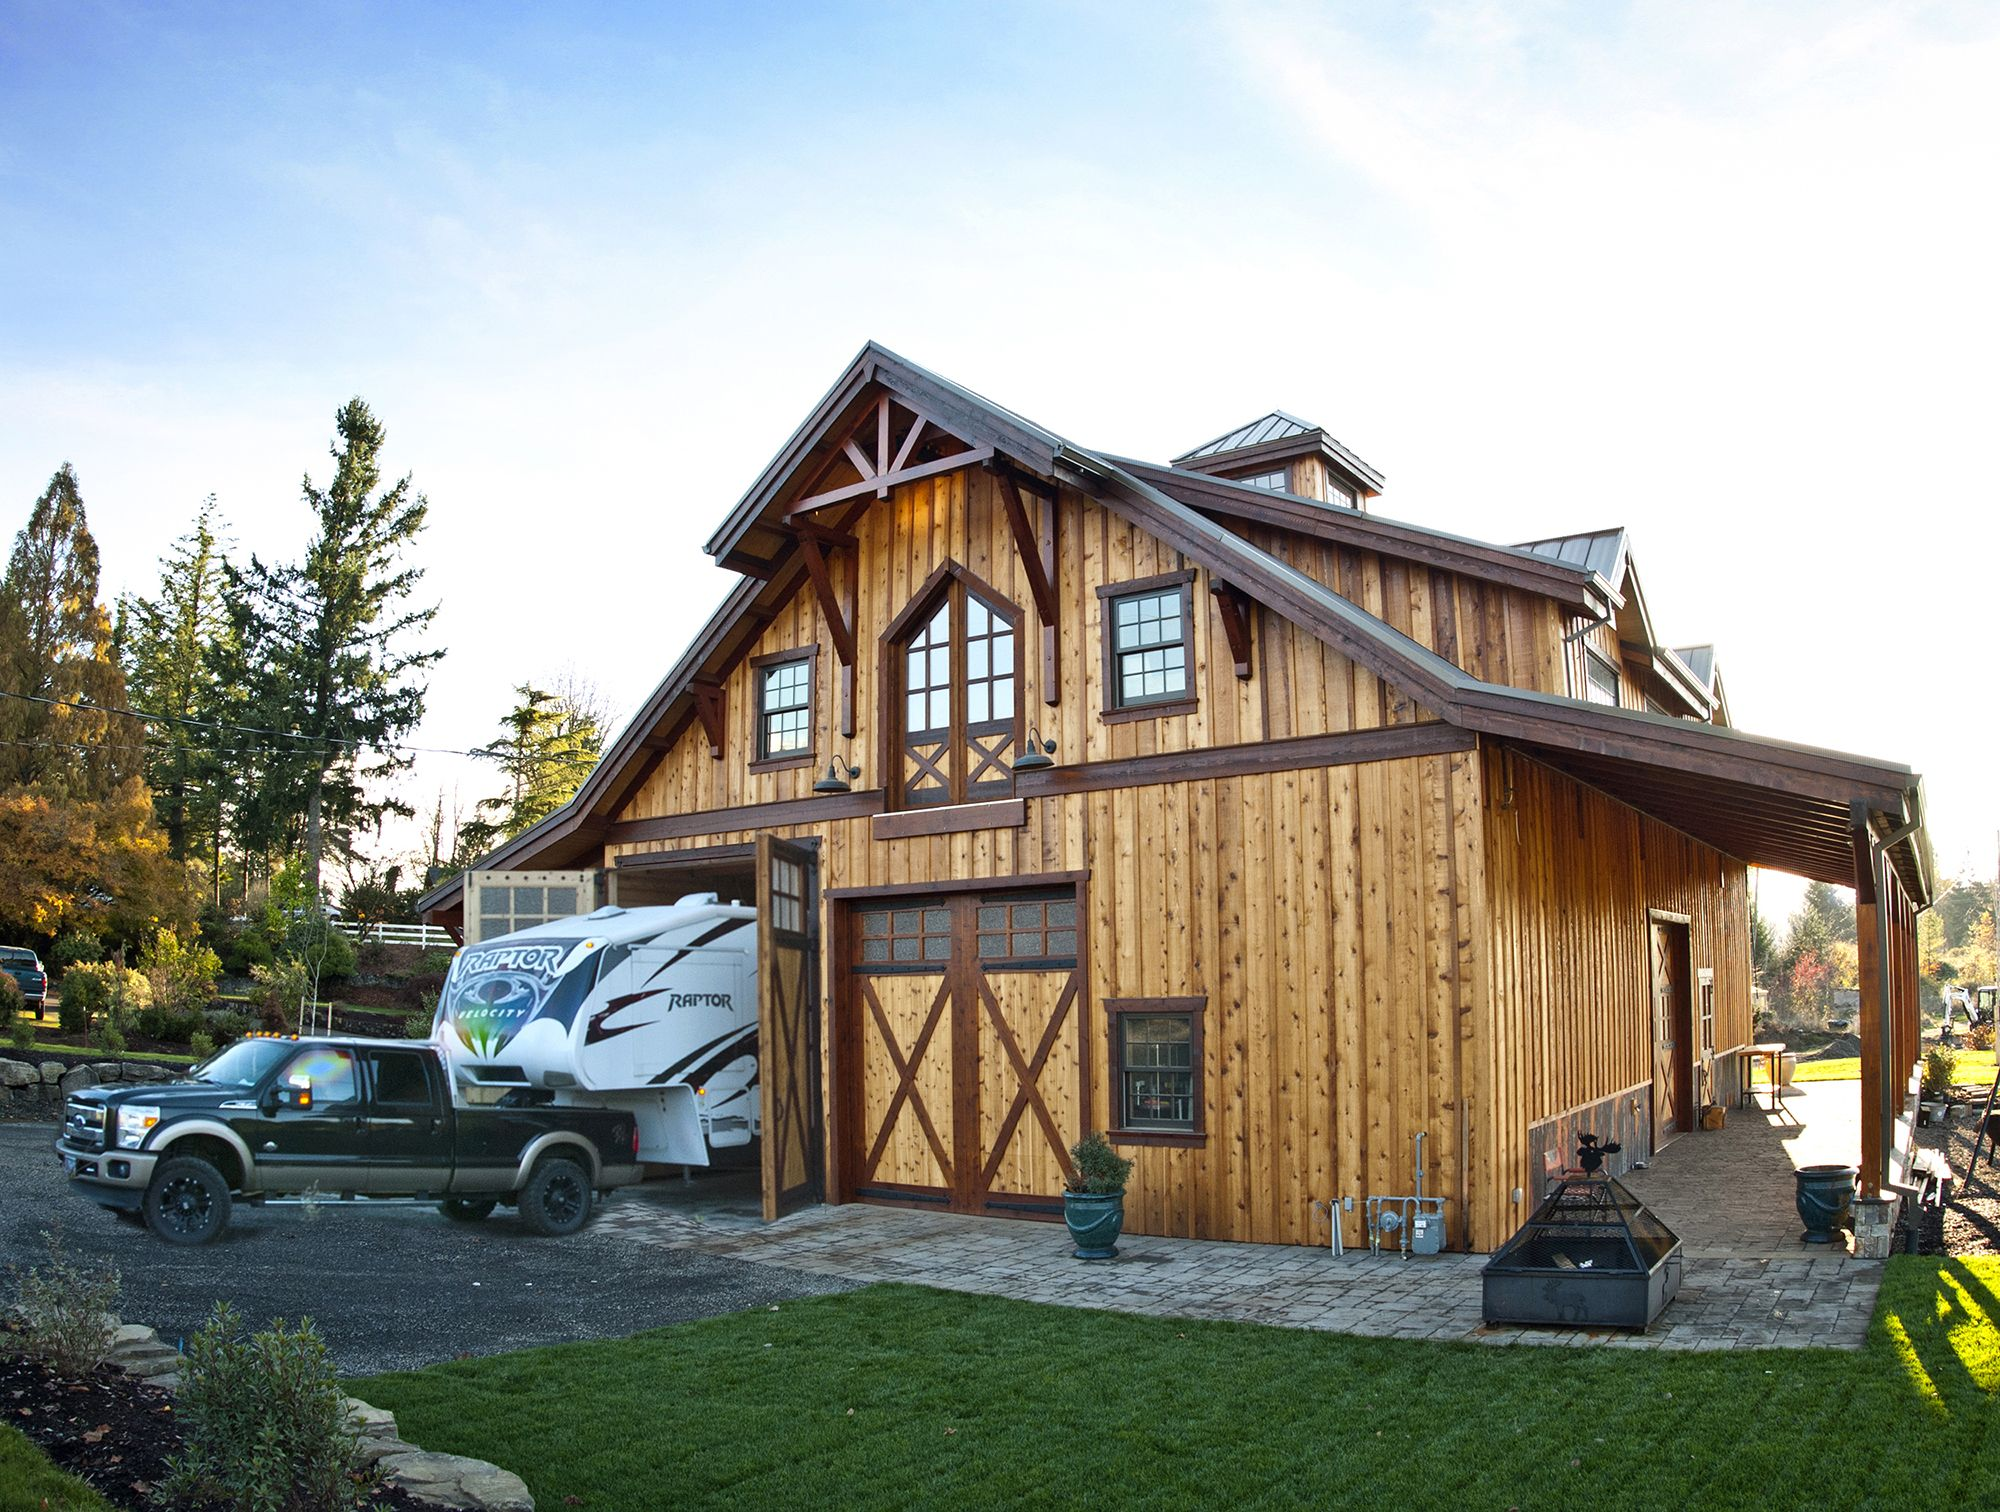 Superb Barn With Living Quarters The Denali Garage Apt 48   Barn Pros